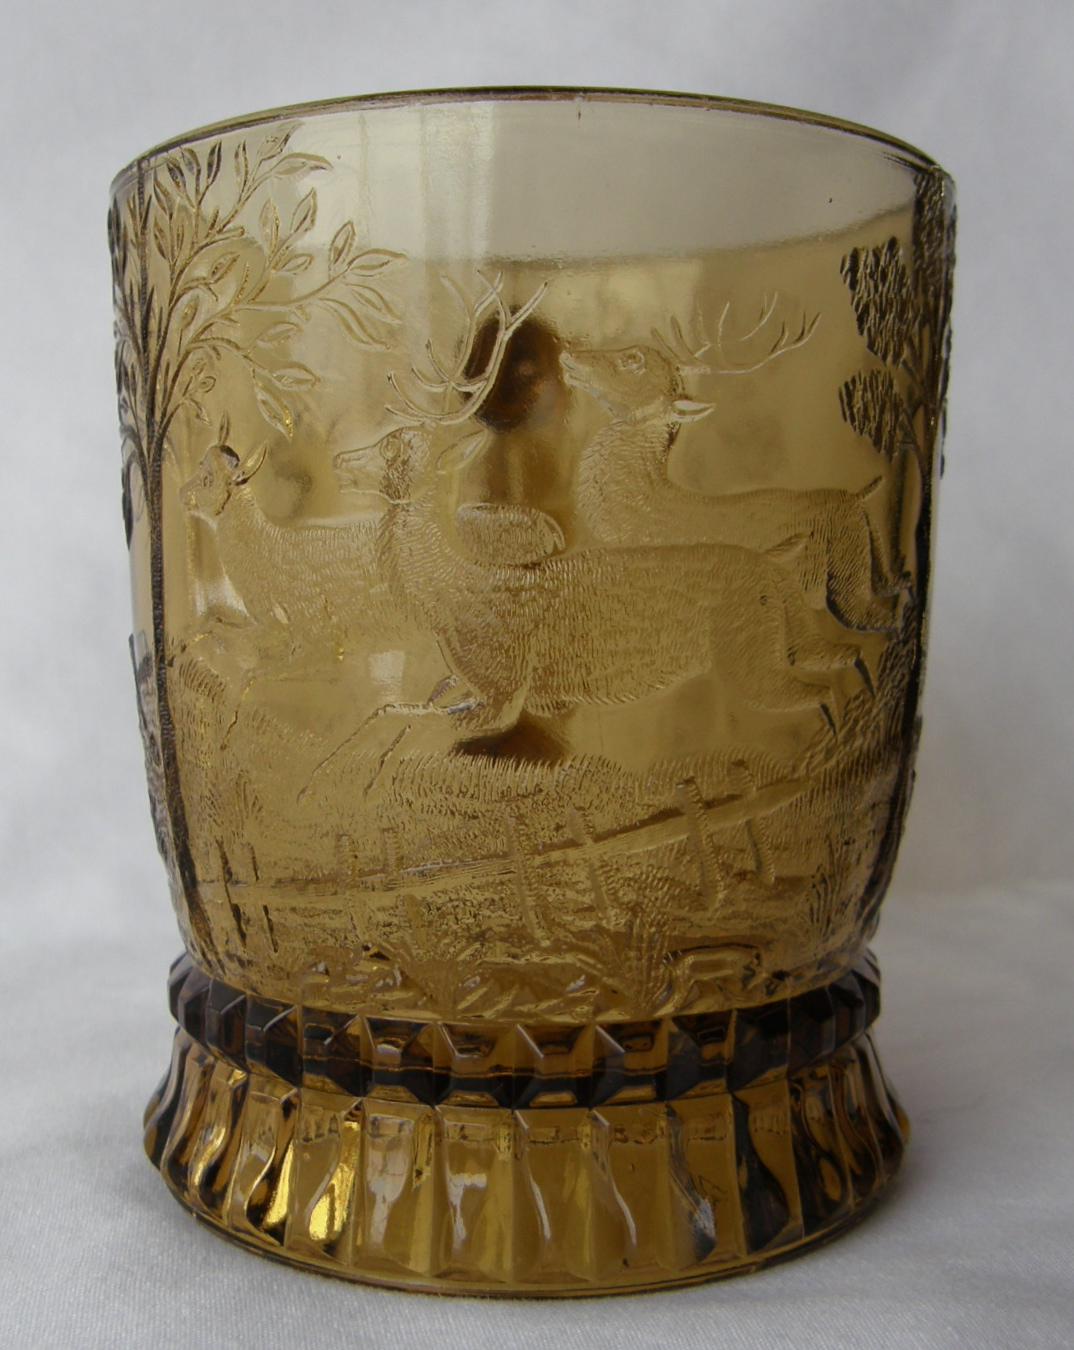 """Dog Chasing Deer (Size: 3-1/4"""" dia. x 3-3/4"""" ht.; Color: Amber) Directly opposite the handle, sculpting shows a doe and two stags running from the dog further around the bowl of the mug.."""